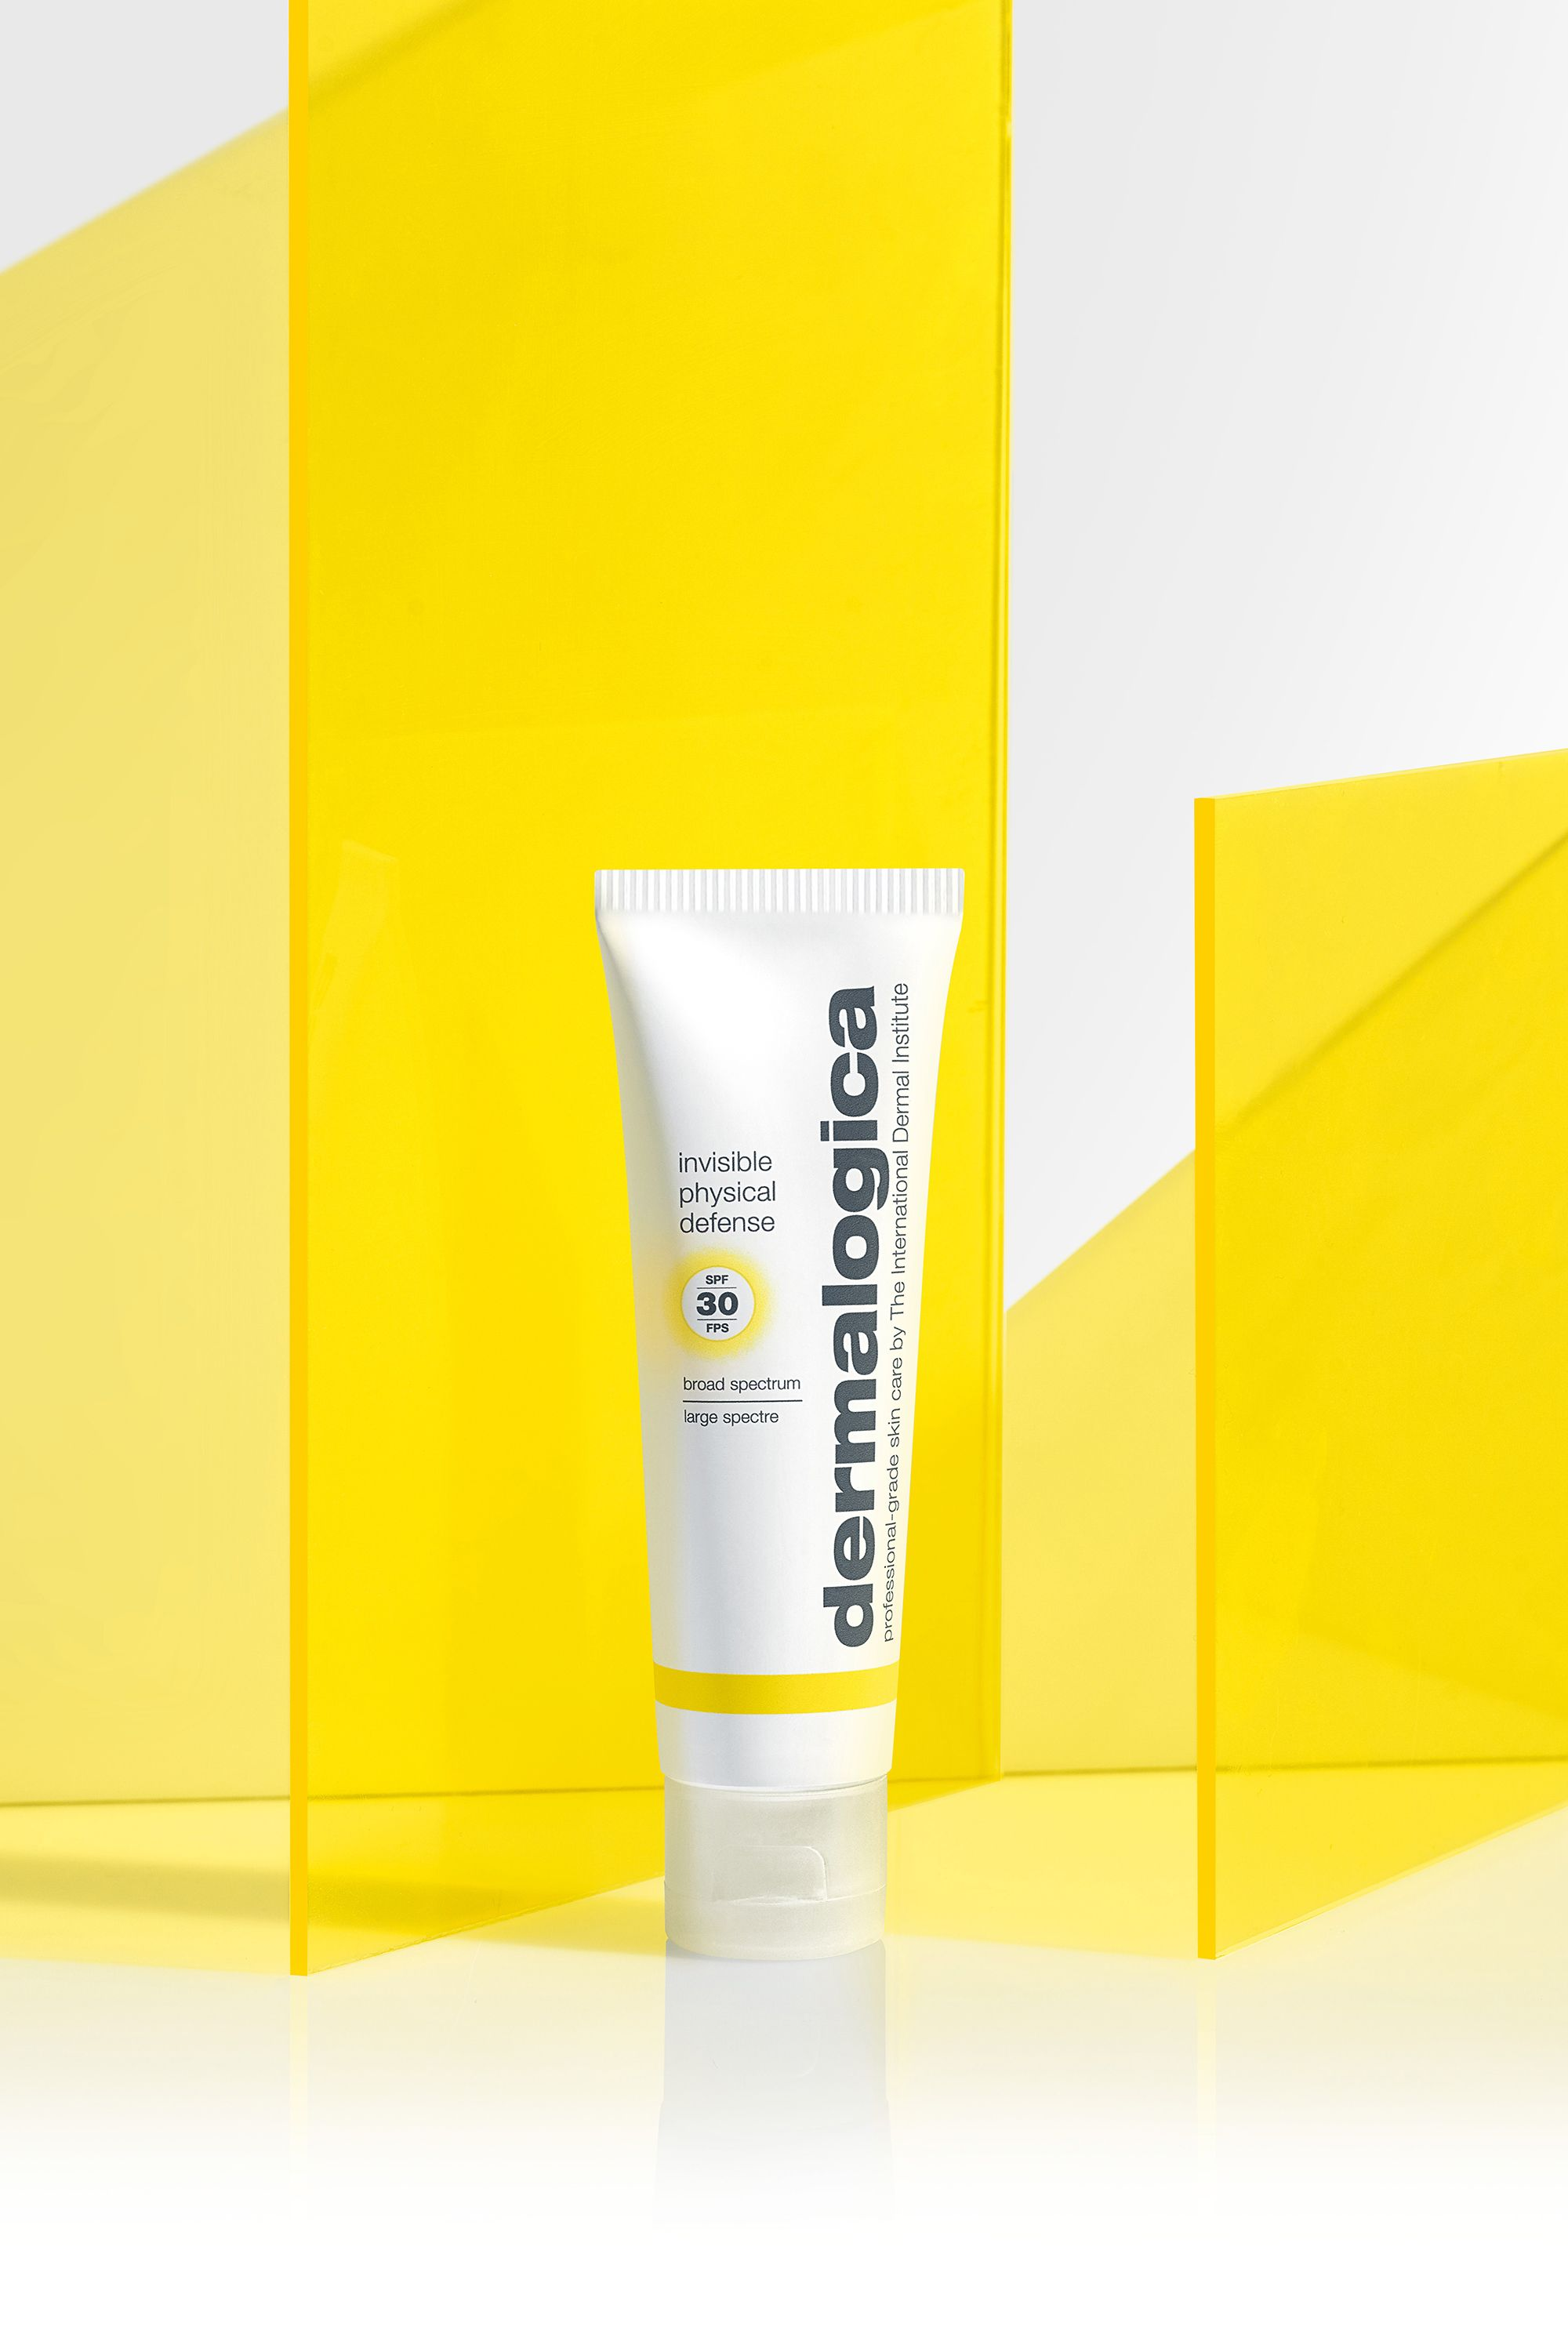 Blissim : Dermalogica - Protection UV invisible SPF30 - Protection UV invisible SPF30